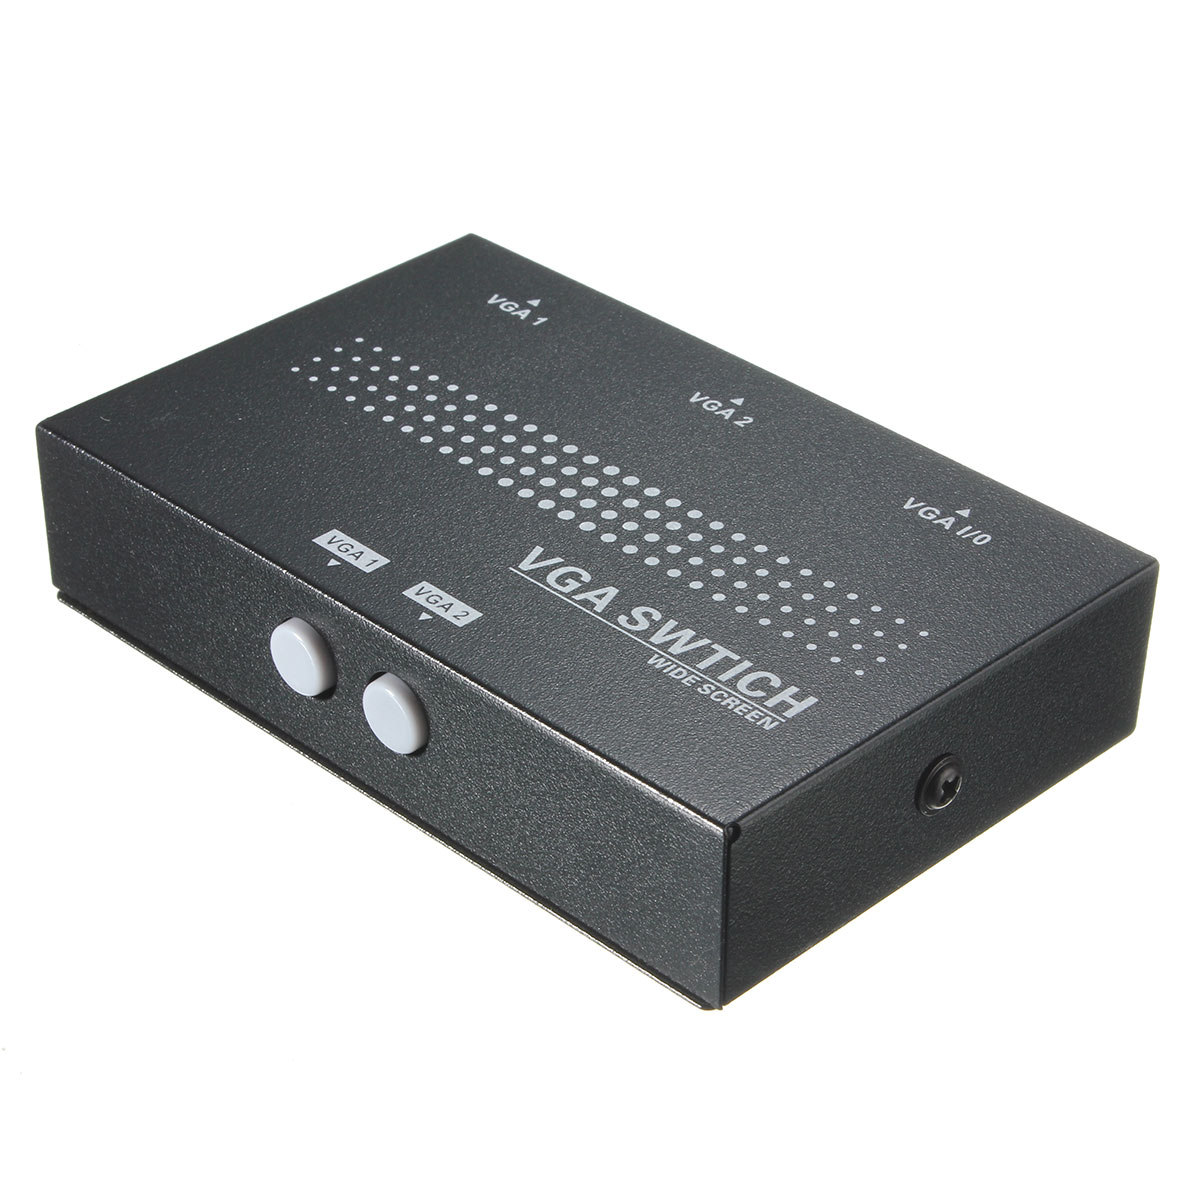 Original Universal 2 Port Hub USB 2.0 KVM SVGA VGA Switch Box Monitor Adapter Connects Printer Intelli Keyboard Mouse Sharing HC